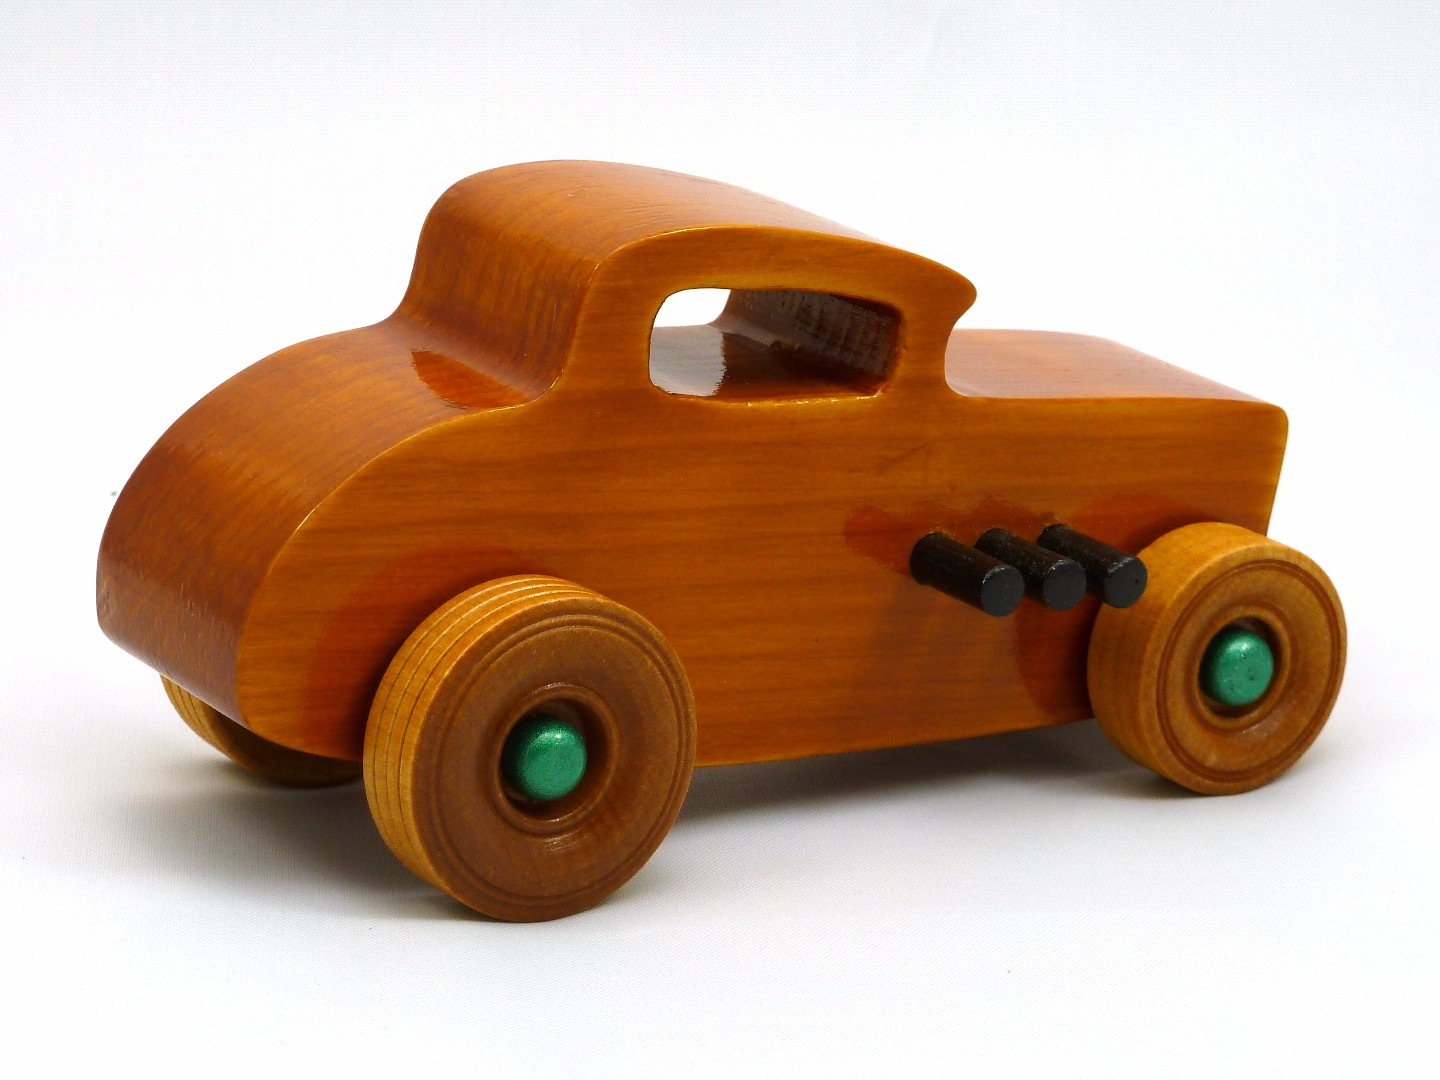 20170902-134340 Wooden Toy Car - Hot Rod Freaky Ford - 32 Deuce Coupe - Pine - Amber Shellac - Metallic Green.jpg